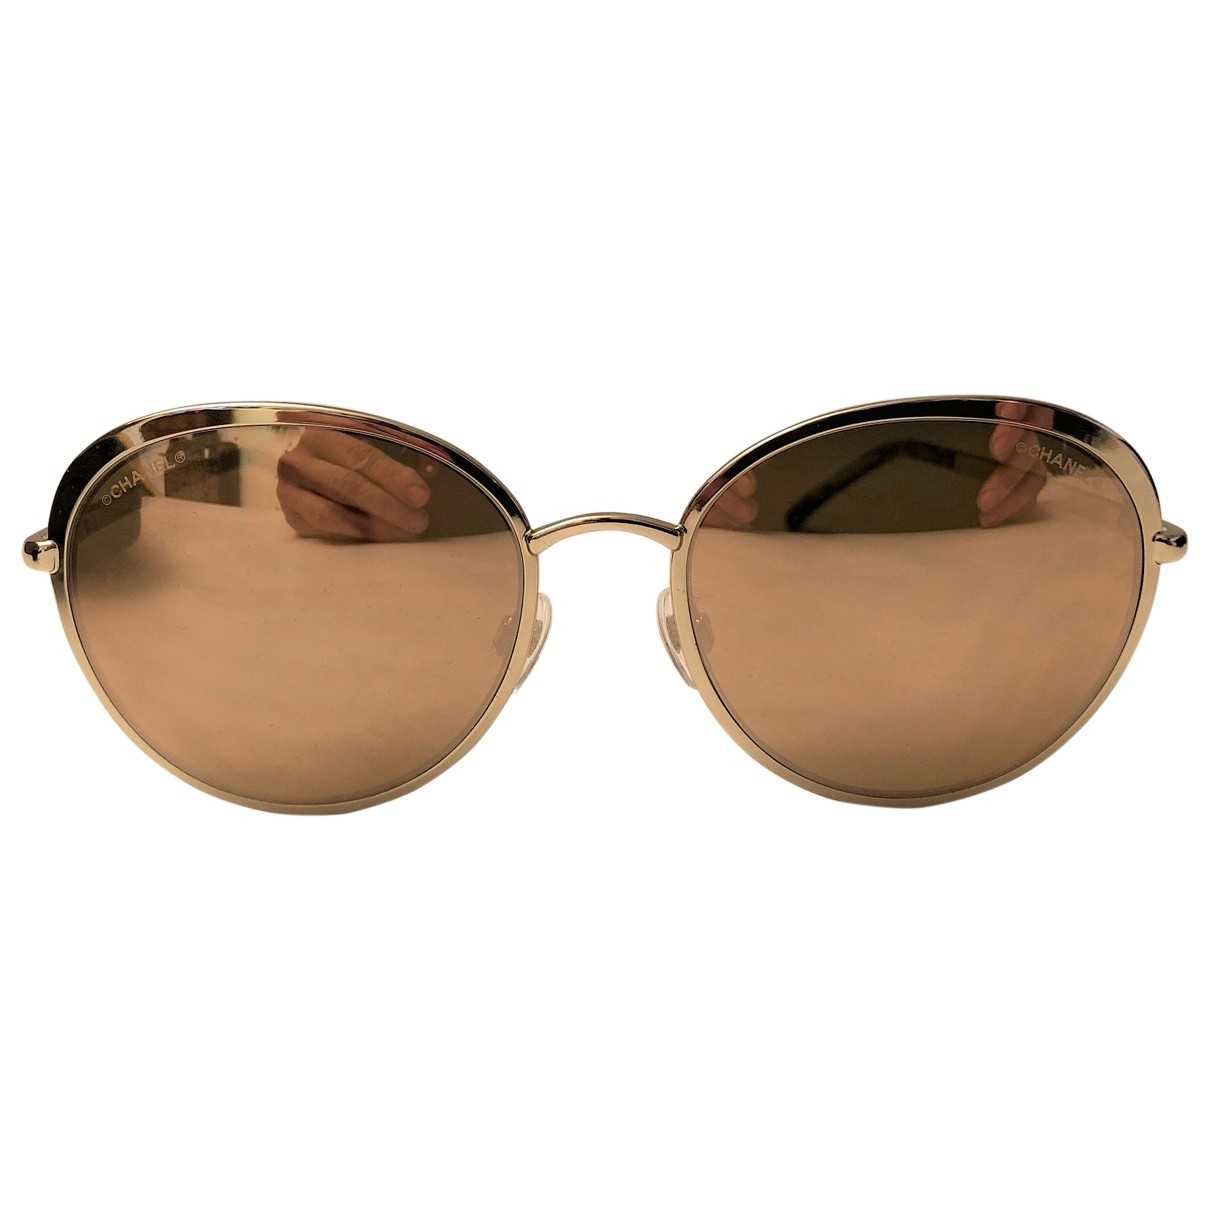 Chanel \N Gold Metal Sunglasses for Women \N